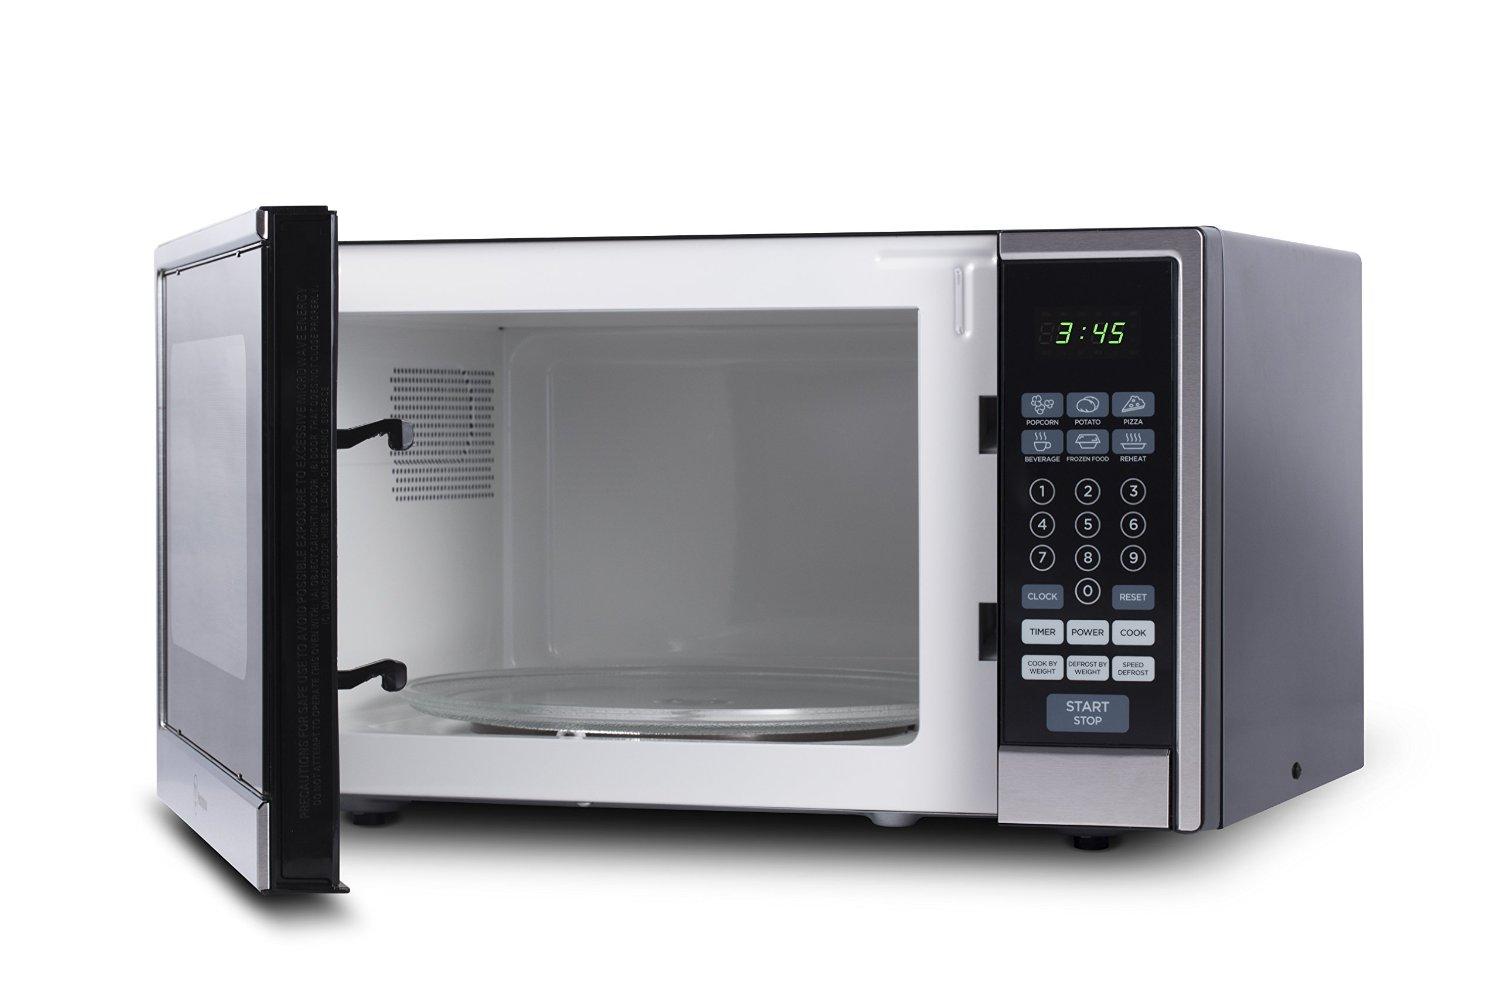 Westinghouse Wcm11100b 1000w Counter Top Microwave Oven